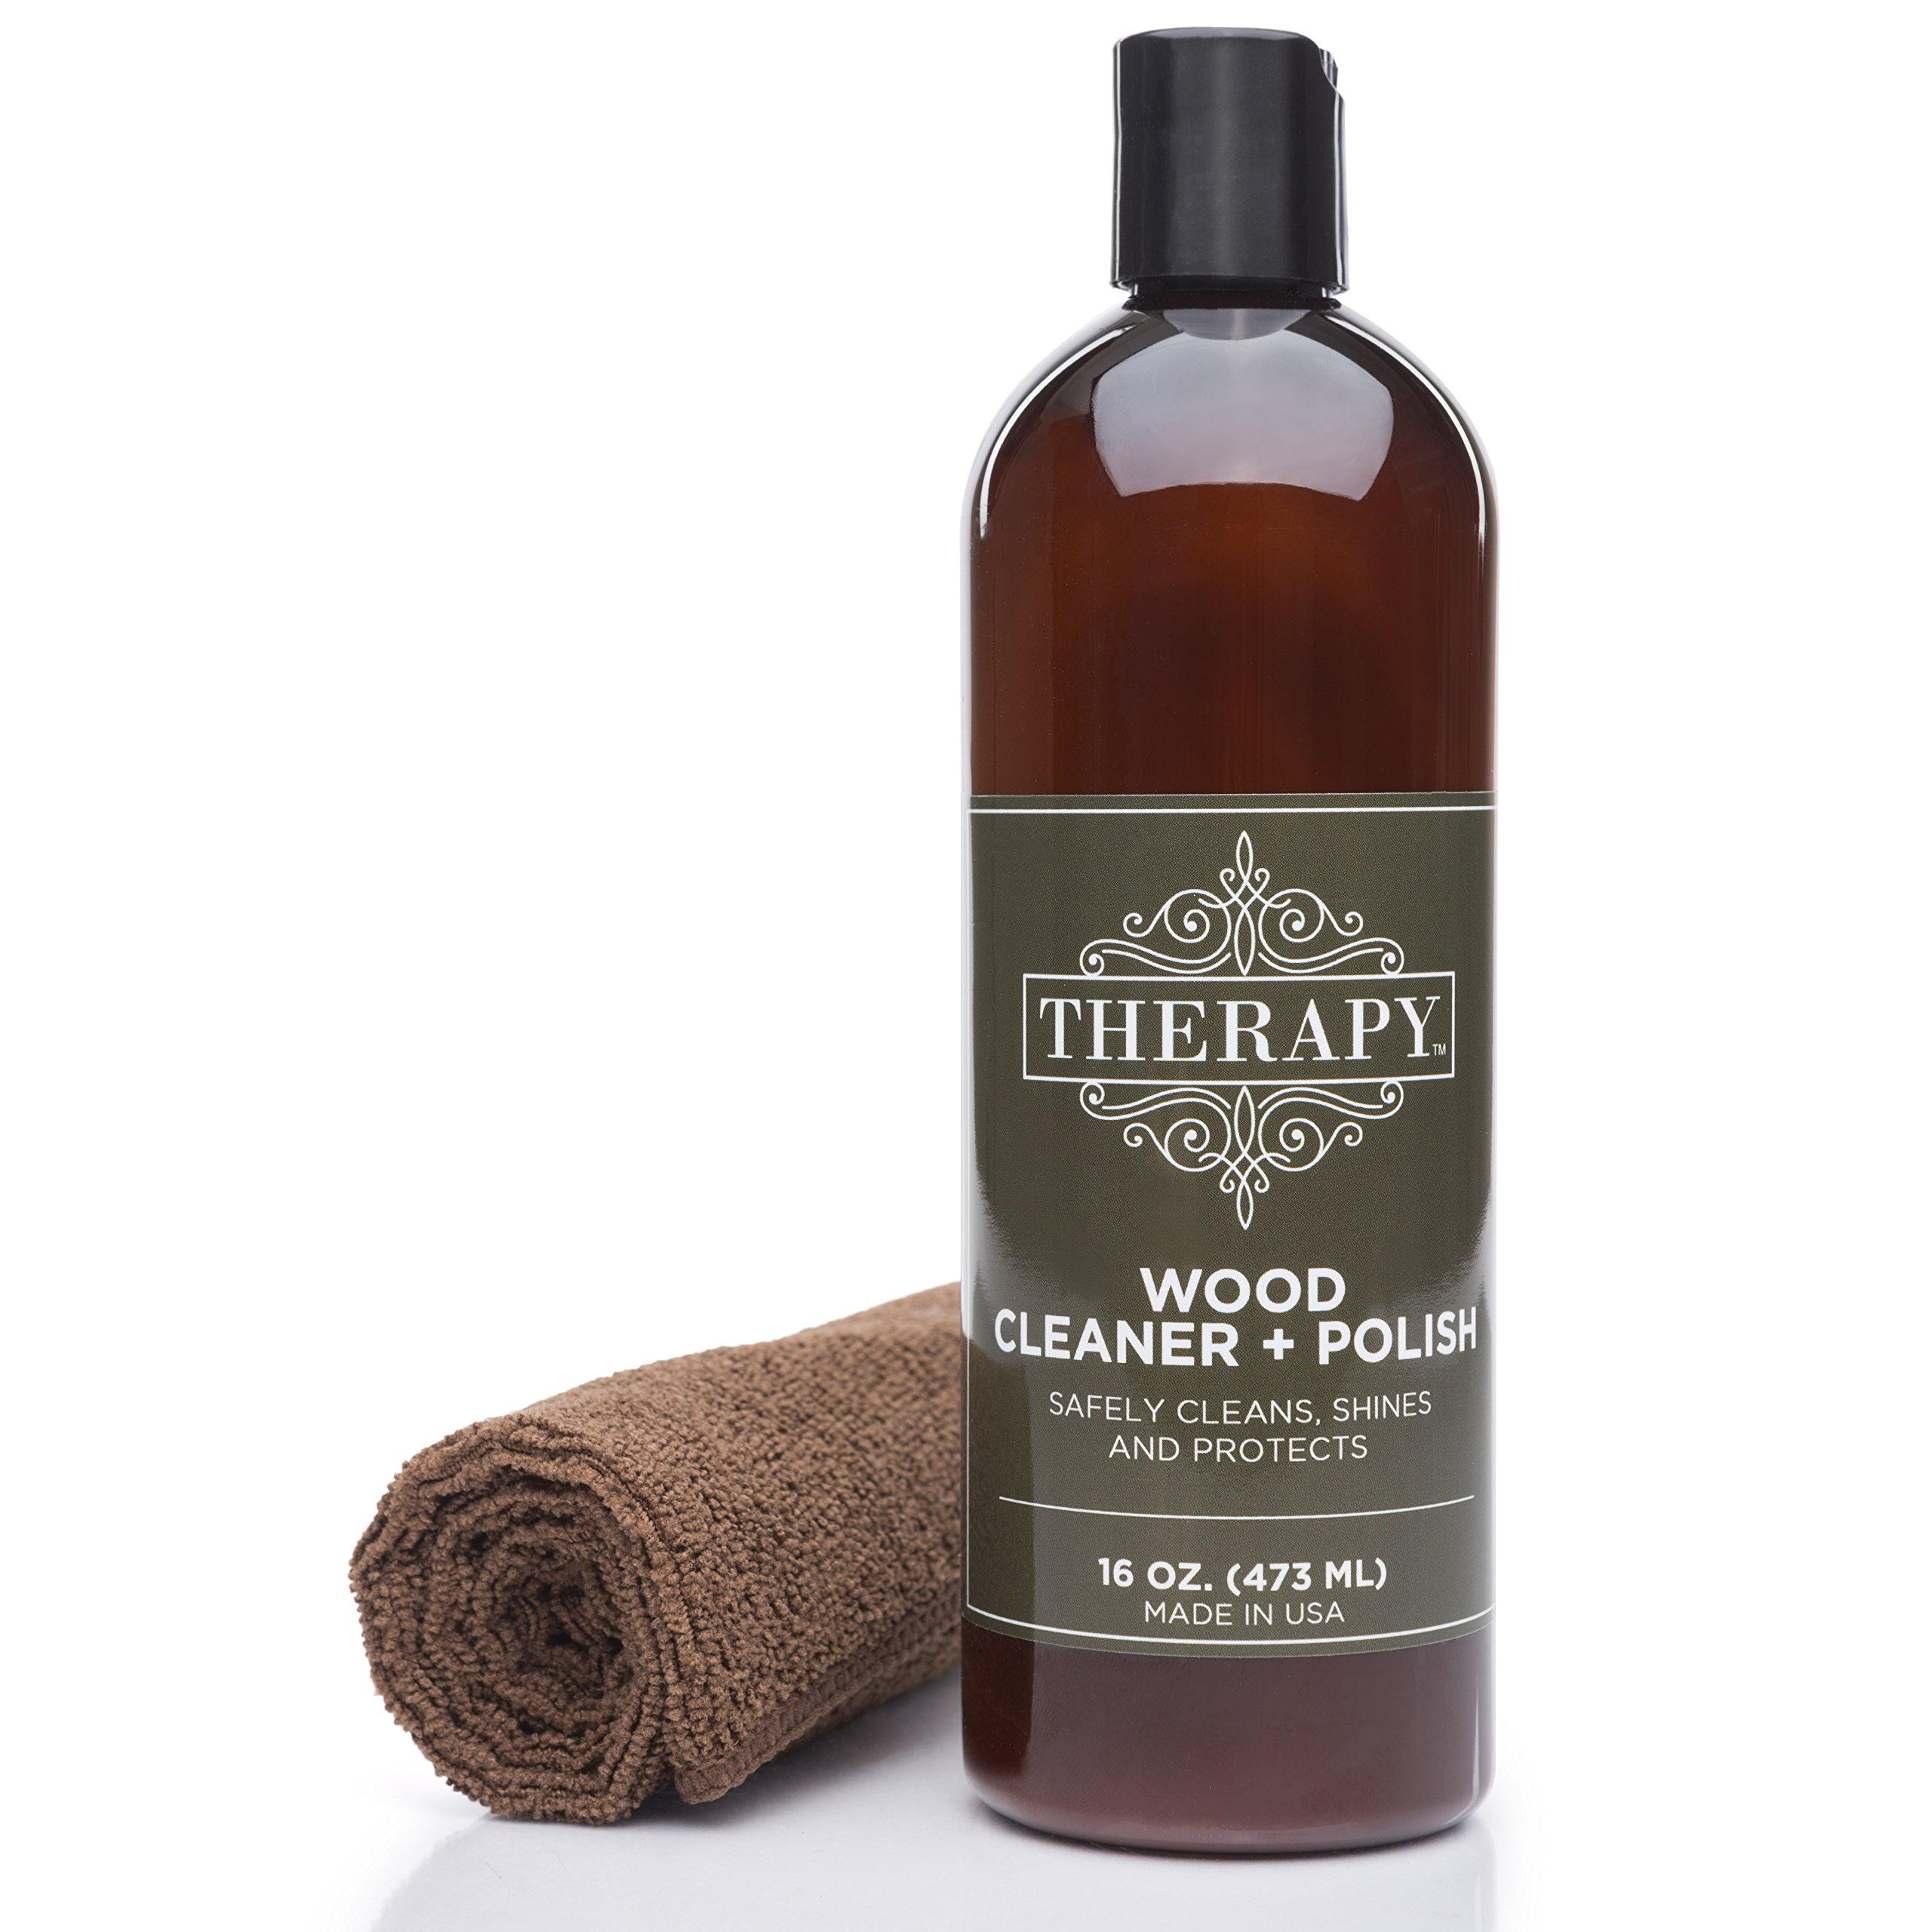 Therapy Wood Cleaner and Polish Kit with Large Microfiber Cloth, 16 fl. oz. - Best Used as Furniture, Wood Table Cleaner, Cabinet Restorer, Conditioner, Polish Spray by Therapy